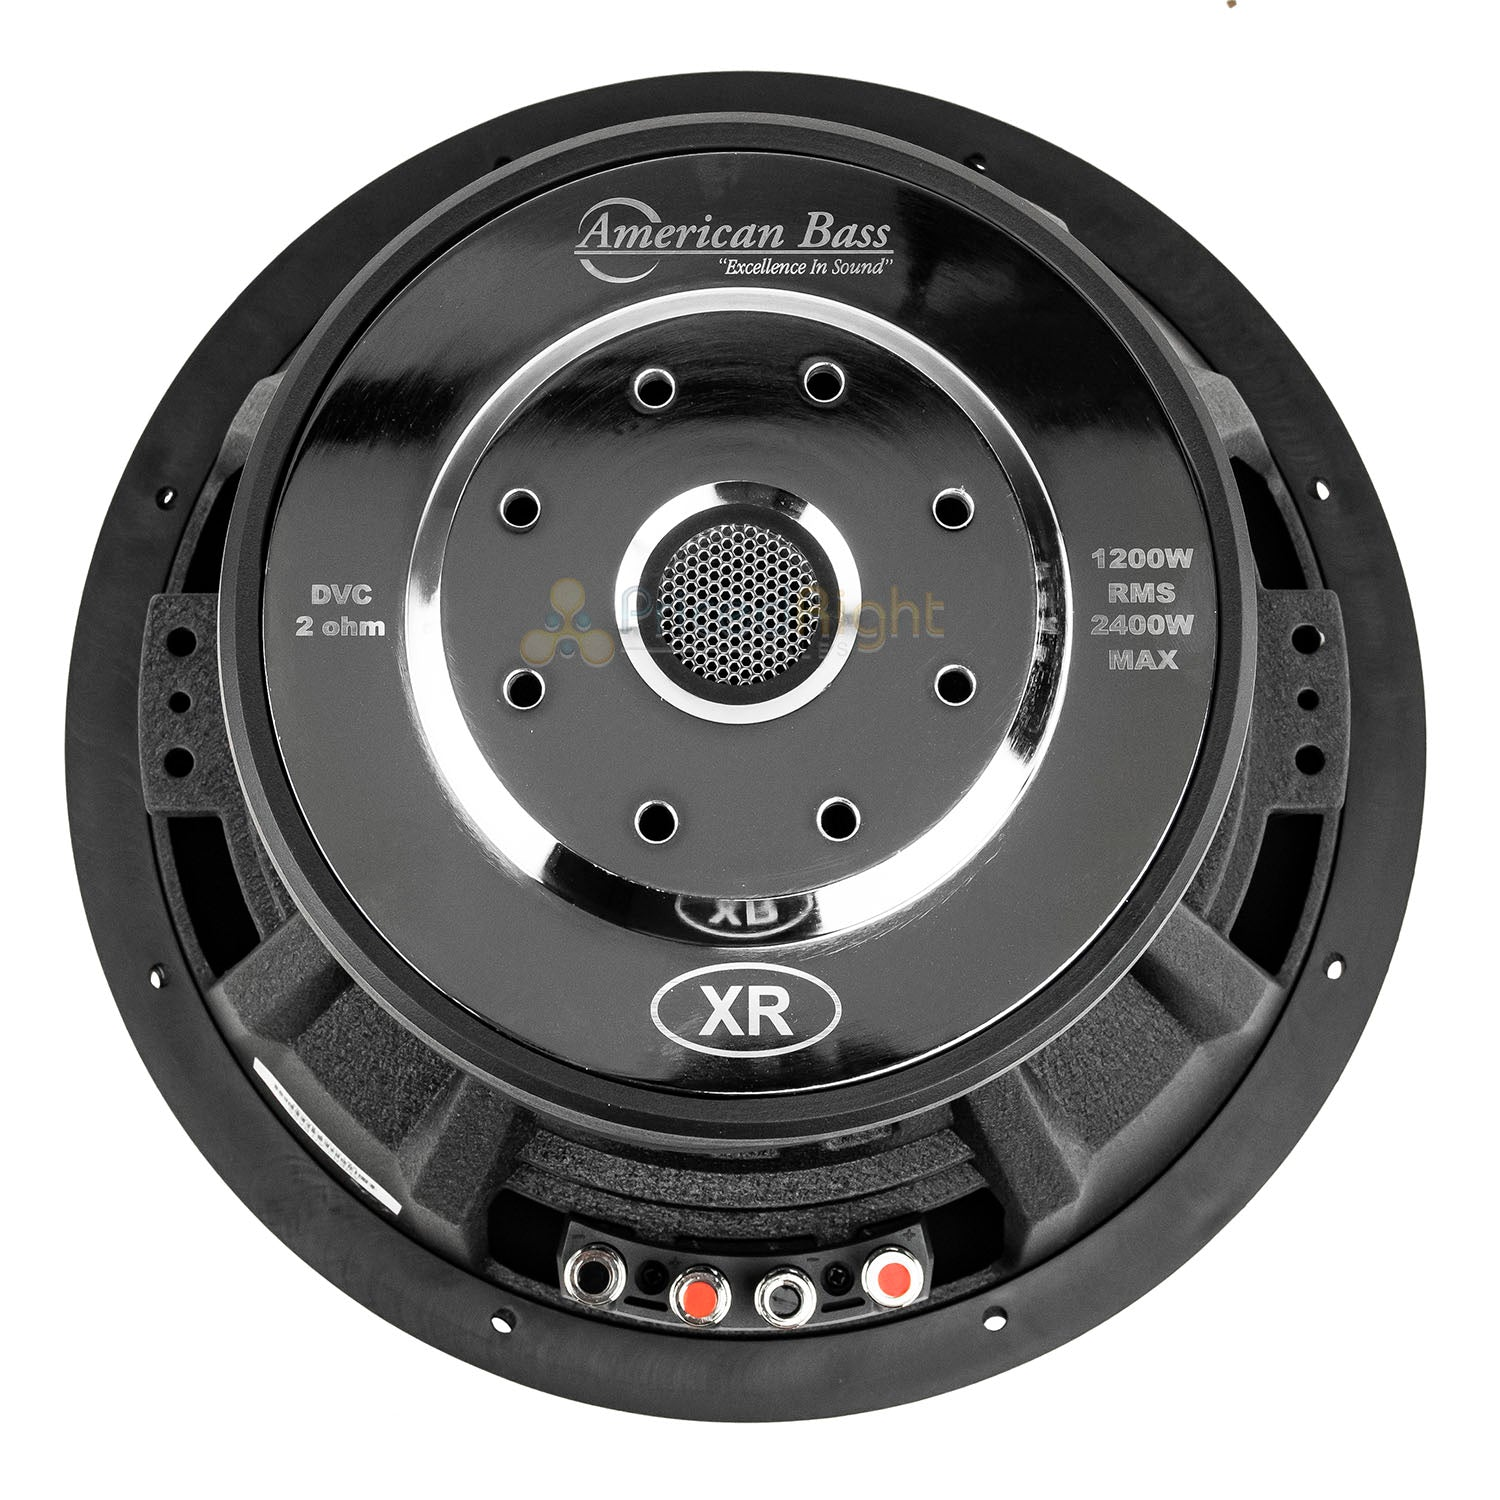 "American Bass XR-12D2 12"" Subwoofer Dual 2 Ohm 2400W Max 200 Oz. Magnet Single"